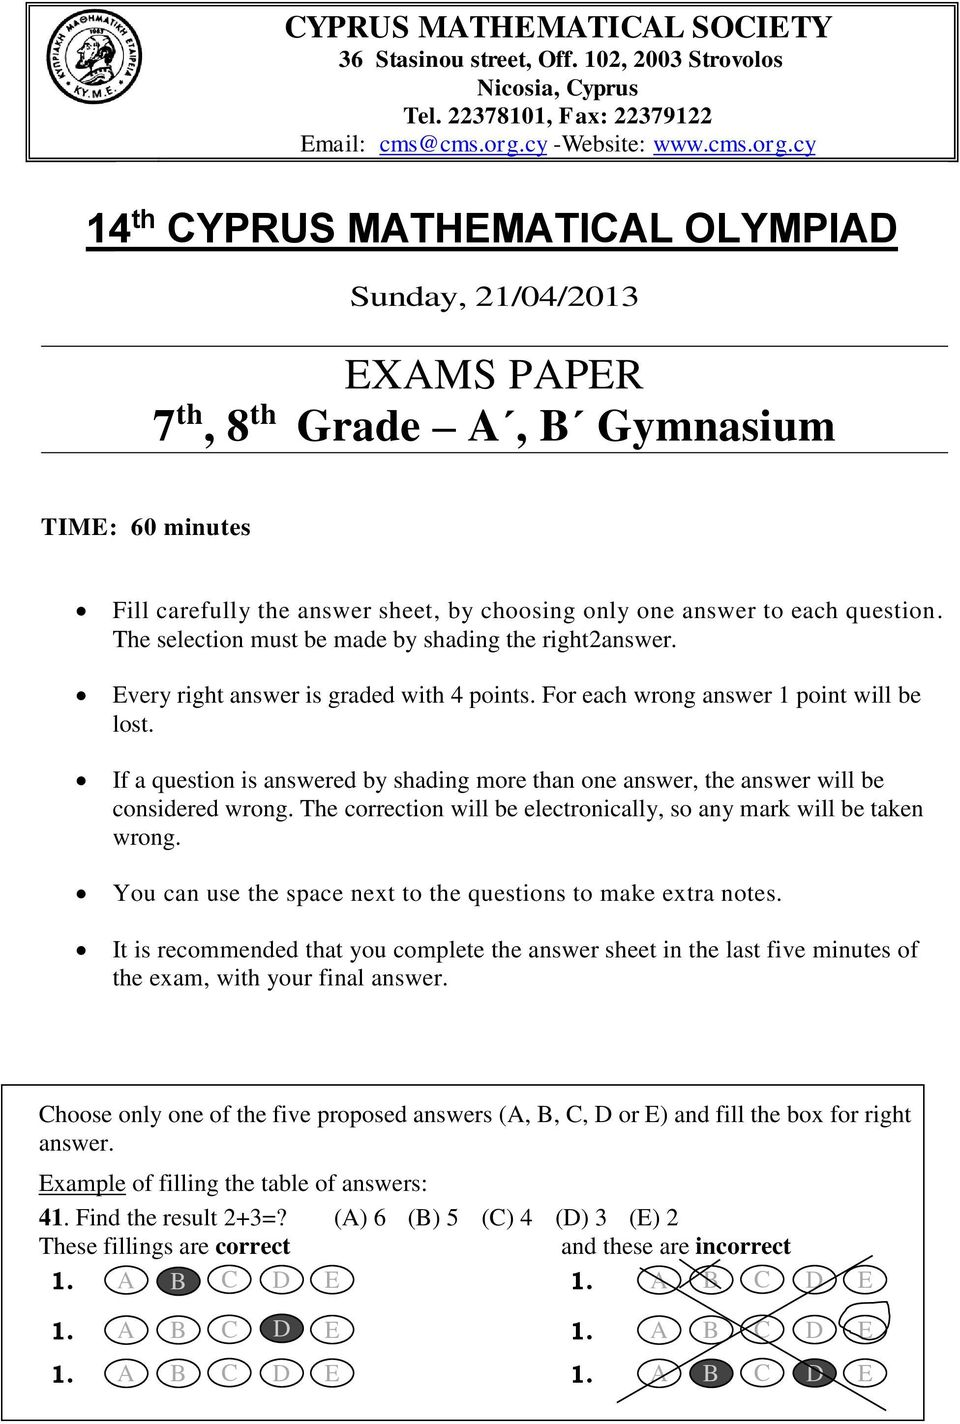 cy 14 th CYPRUS MATHEMATICAL OLYMPIAD Sunday, 21/04/2013 EXAMS PAPER 7 th, 8 th Grade A, B Gymnasium TIME: 60 minutes Fill carefully the answer sheet, by choosing only one answer to each question.